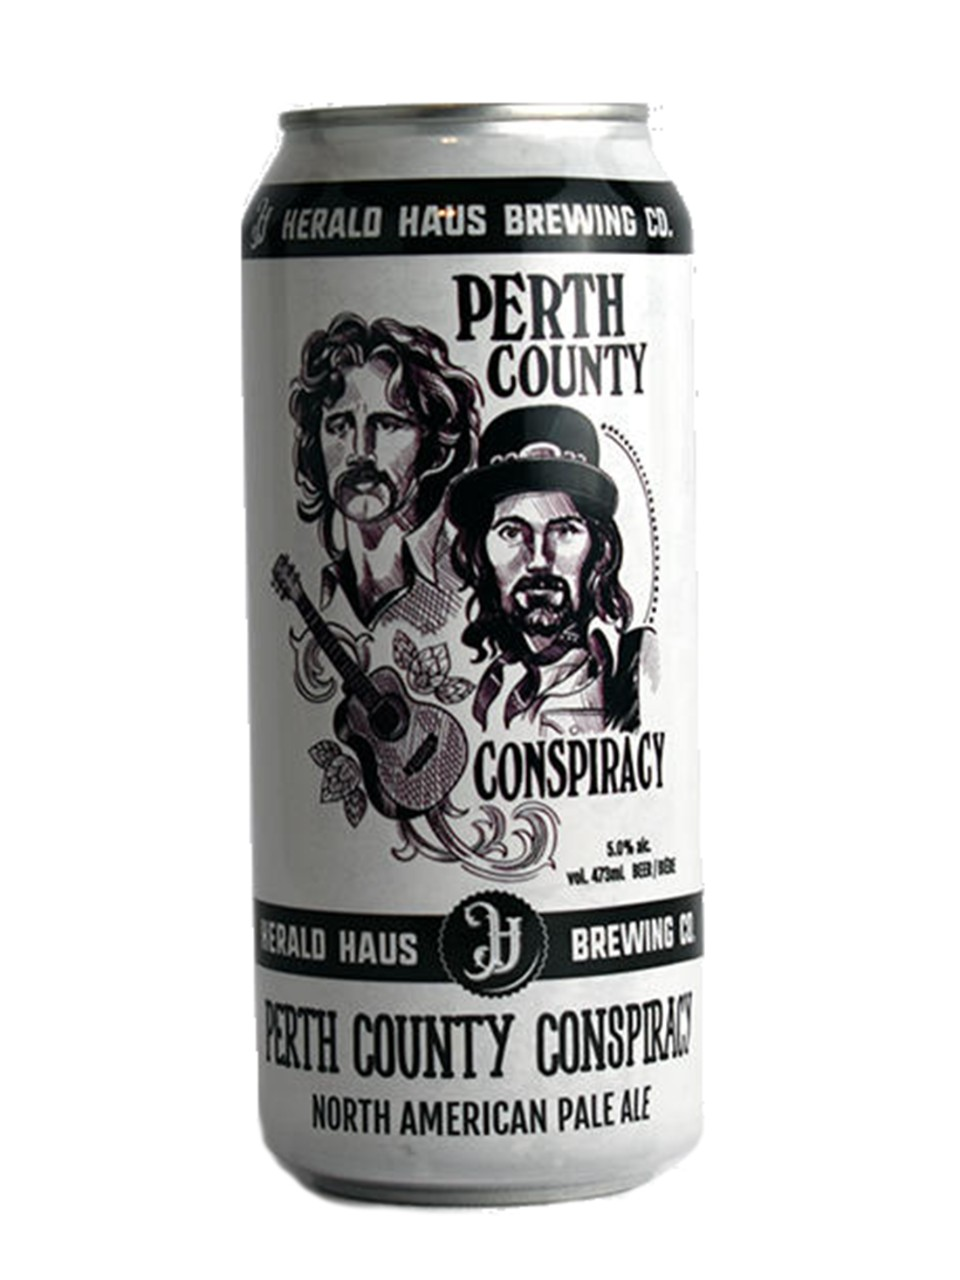 Image for Herald Haus, Perth County Conspiracy Pale Ale from LCBO